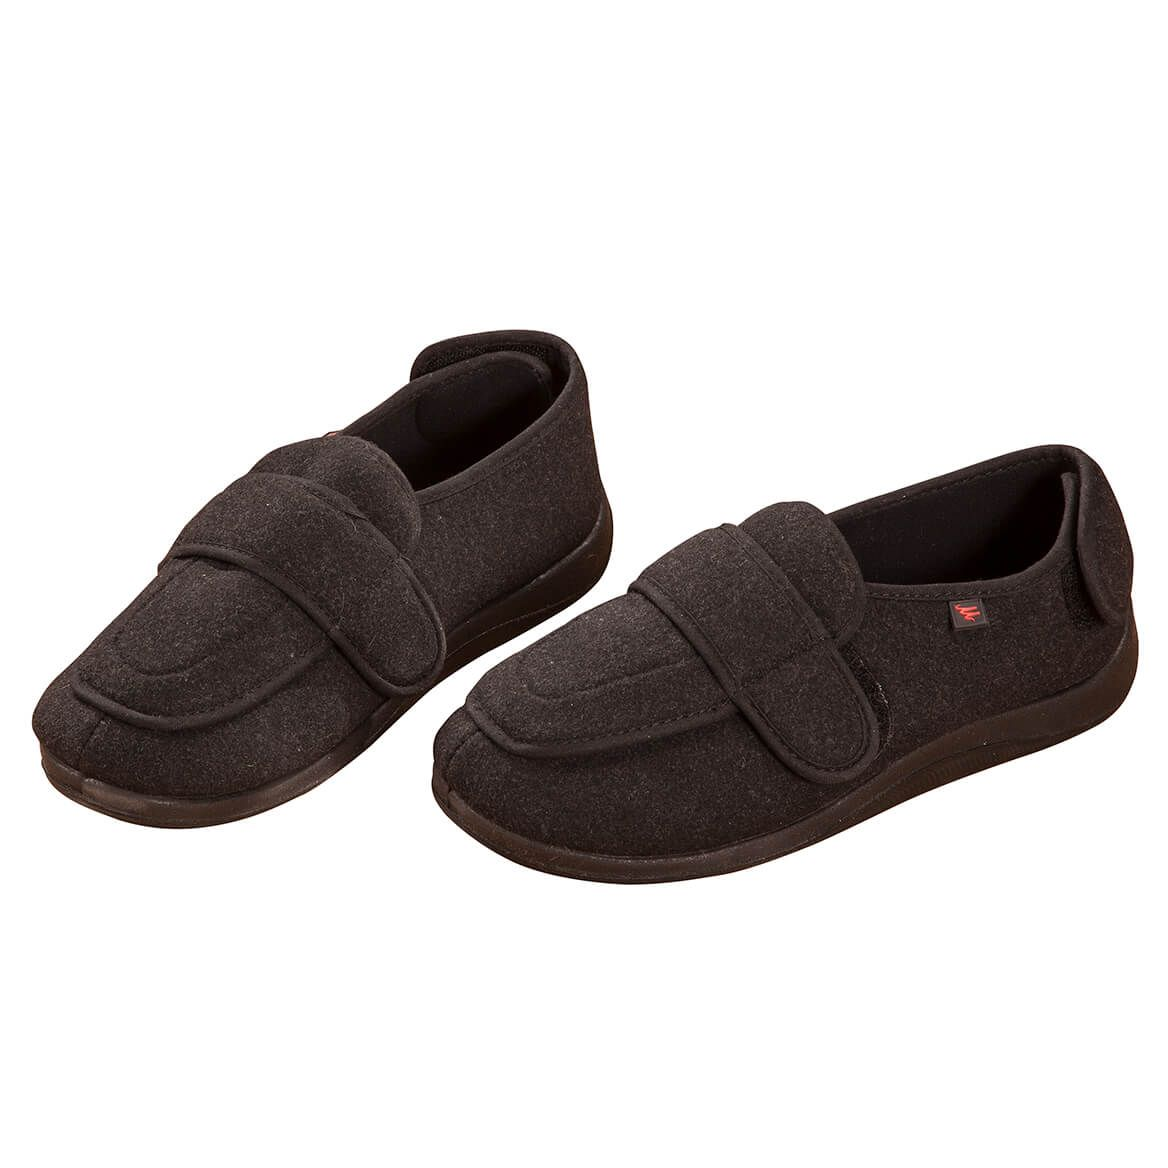 Adjustable Edema Slippers by Silver Steps™-367054